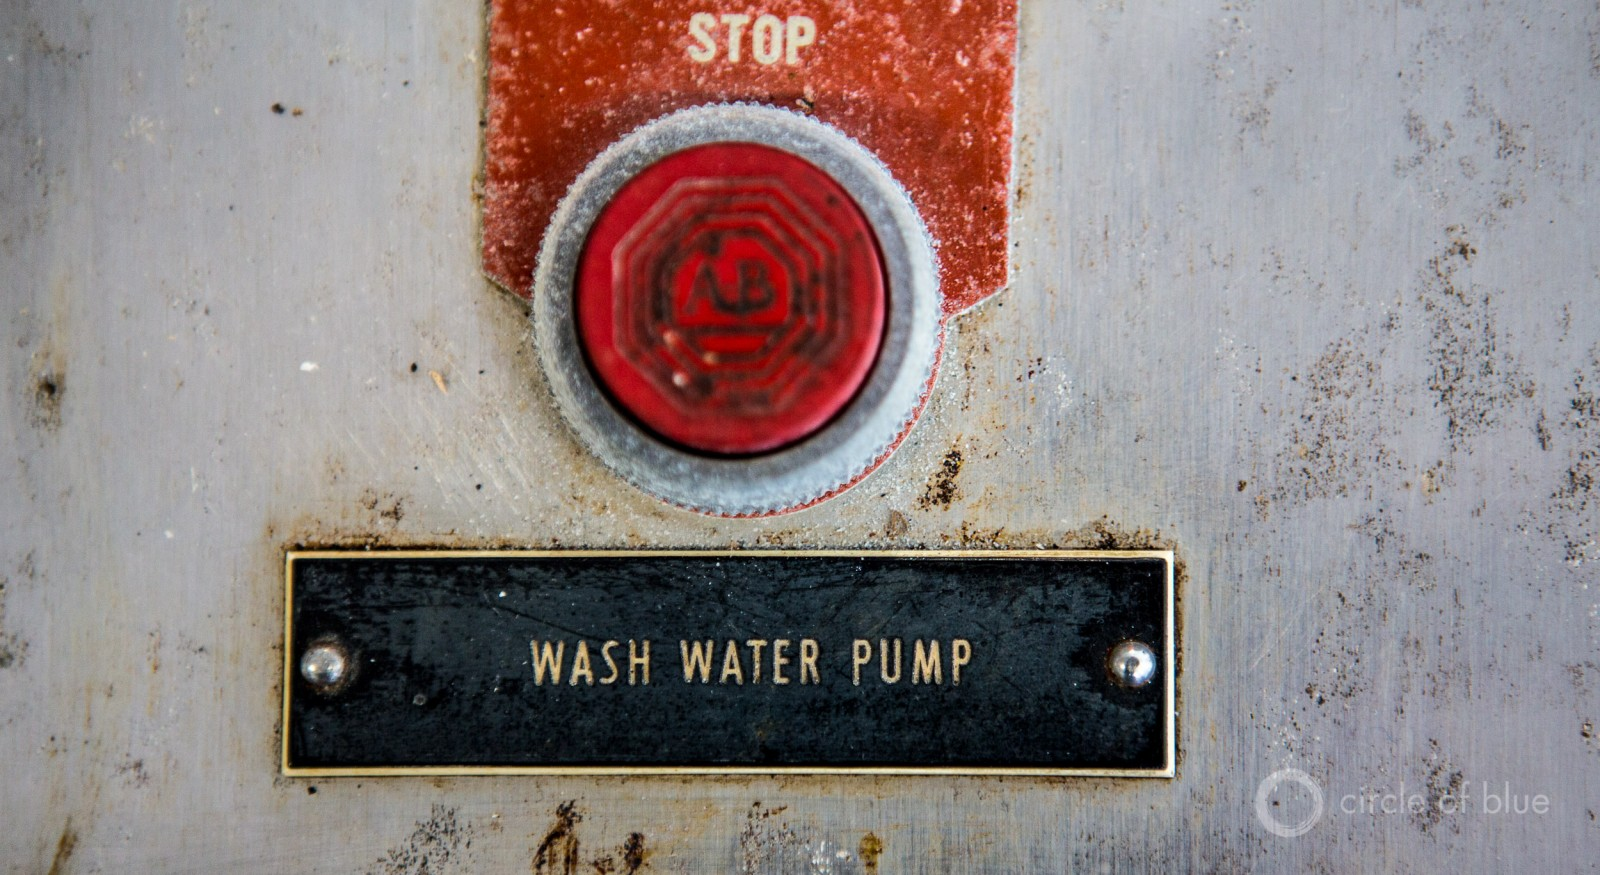 Necessary water infrastructure investment in the United States is set to face a funding gap of $US 105 billion over the next decade.